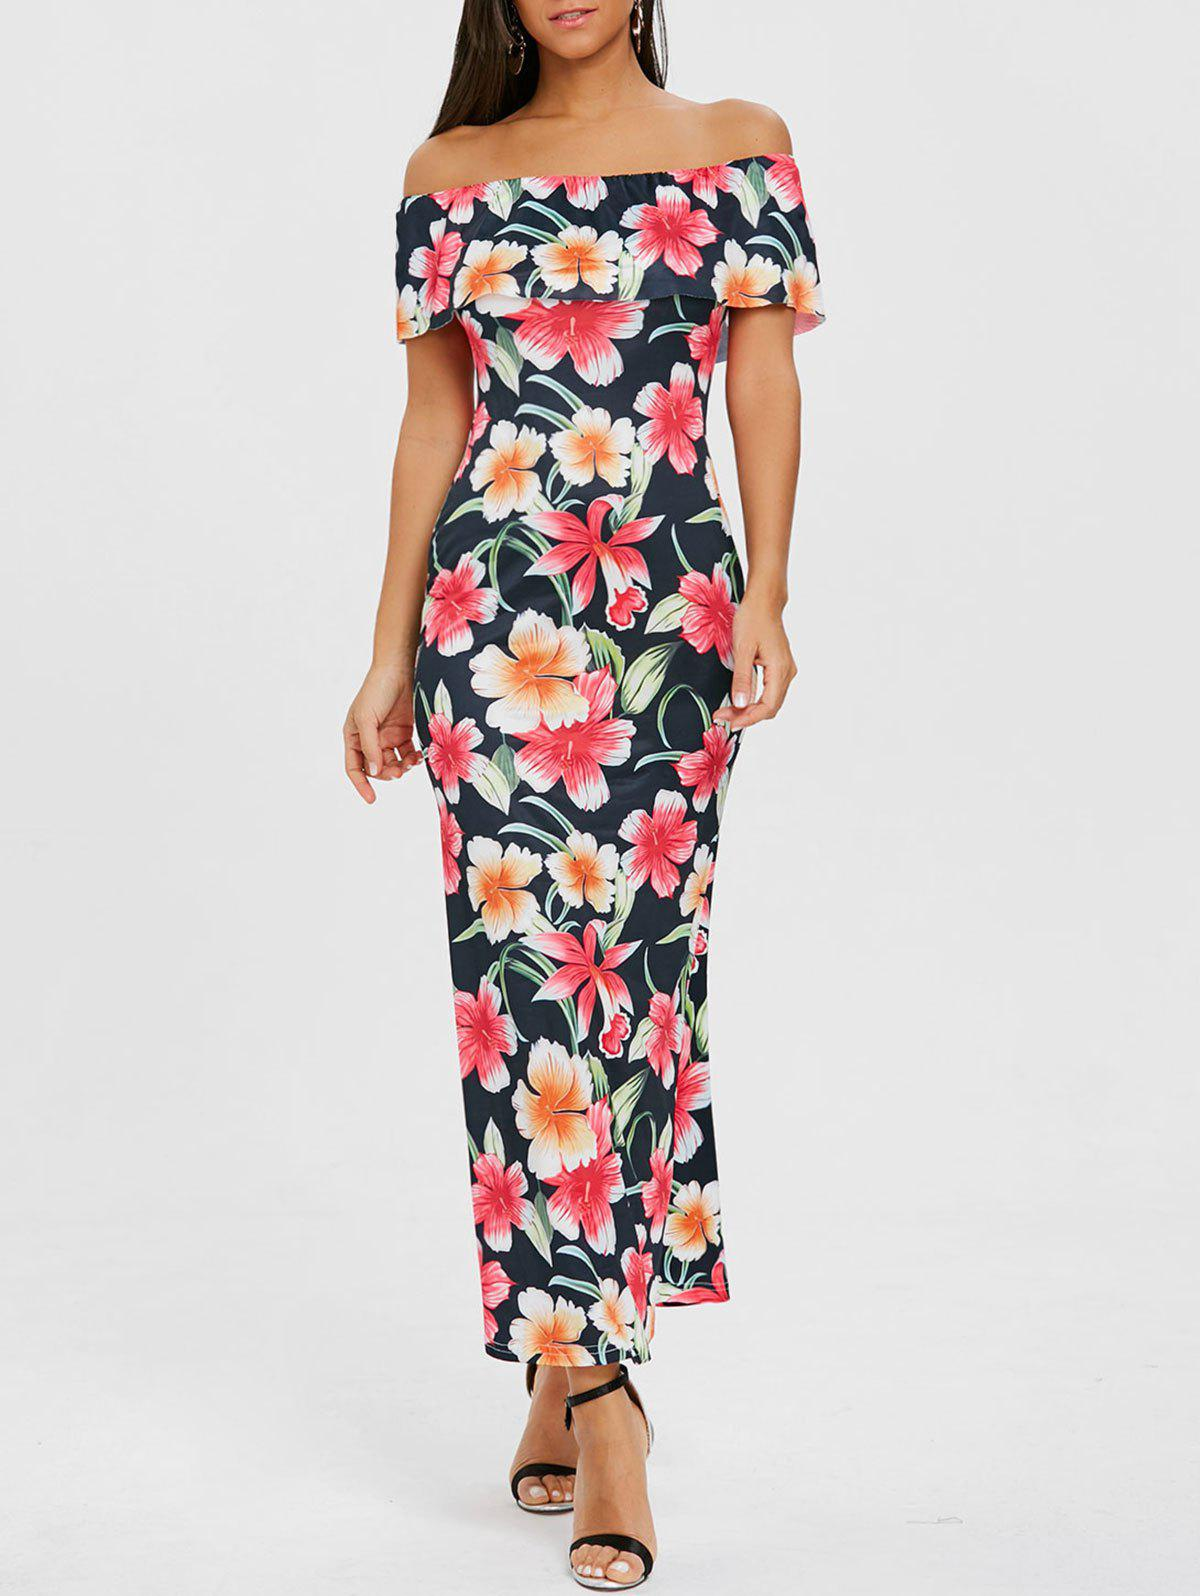 Floral Ruffle Maxi Off Shoulder Dress - PURPLISH BLUE S